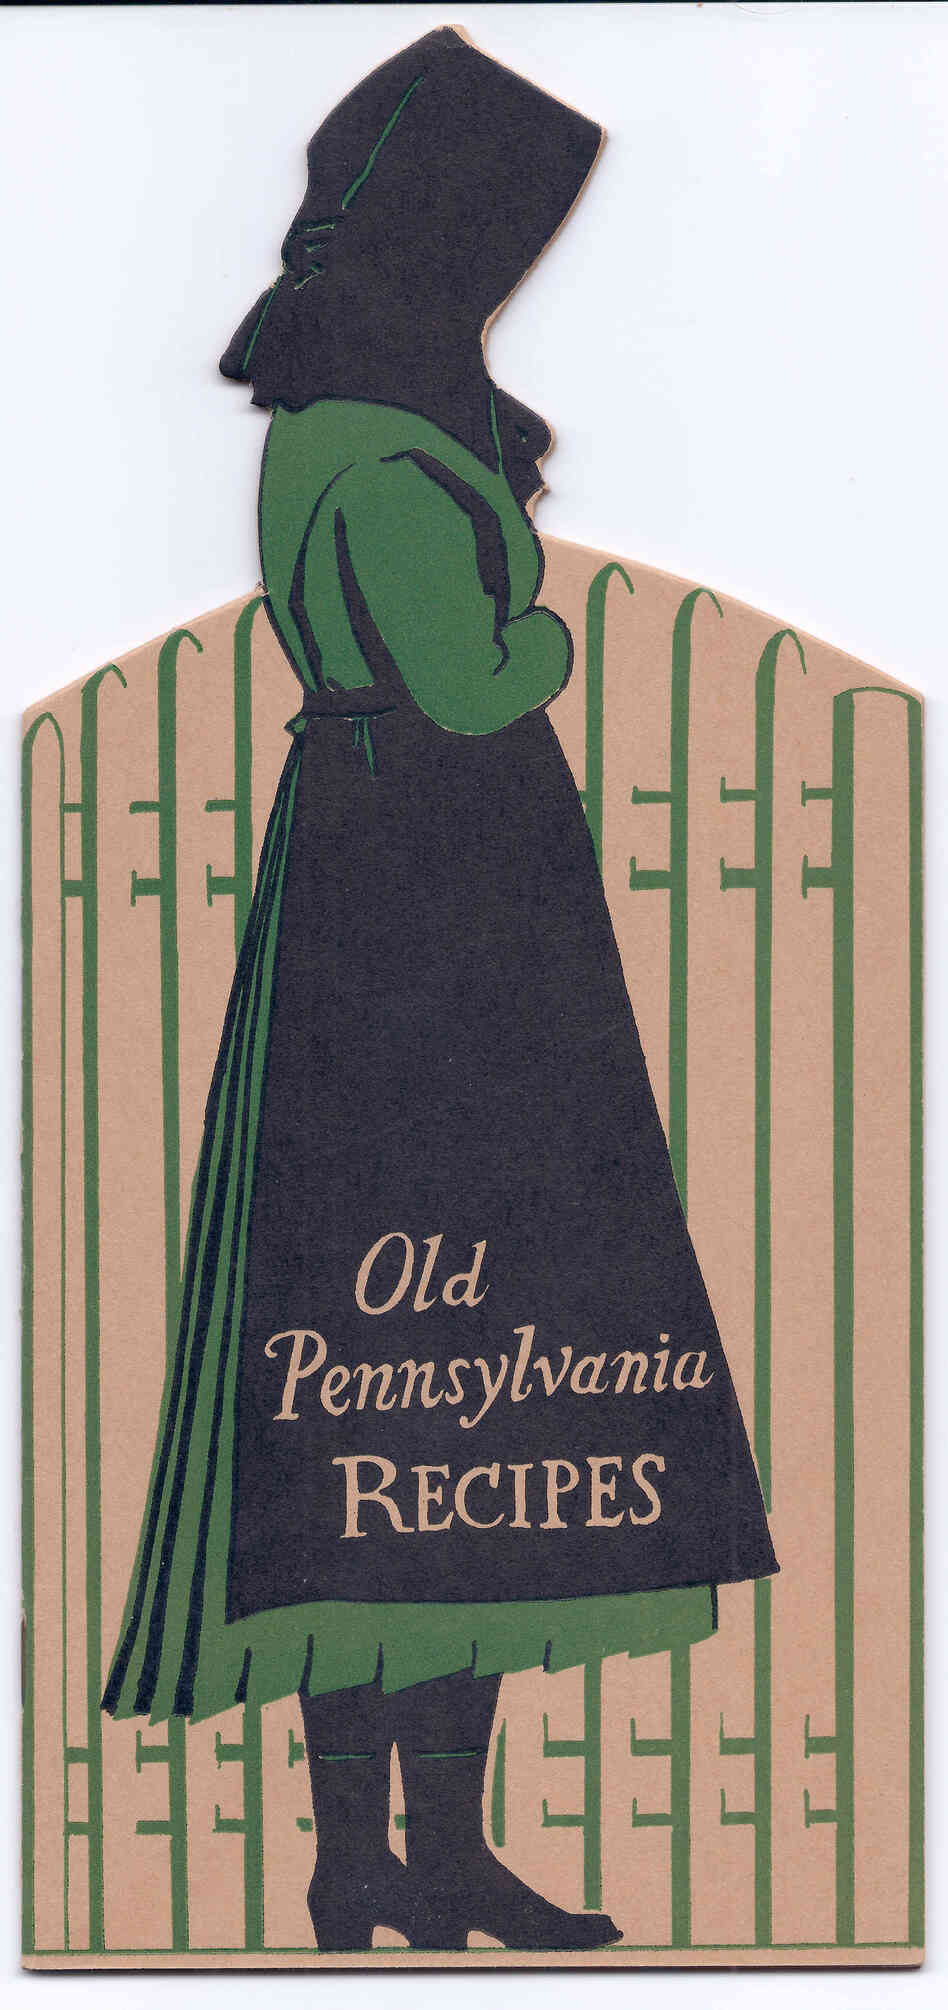 The Apfel & Wenrich die-cut cookbook in the shape of an Amish girl. Lancaster, Pa., 1933.